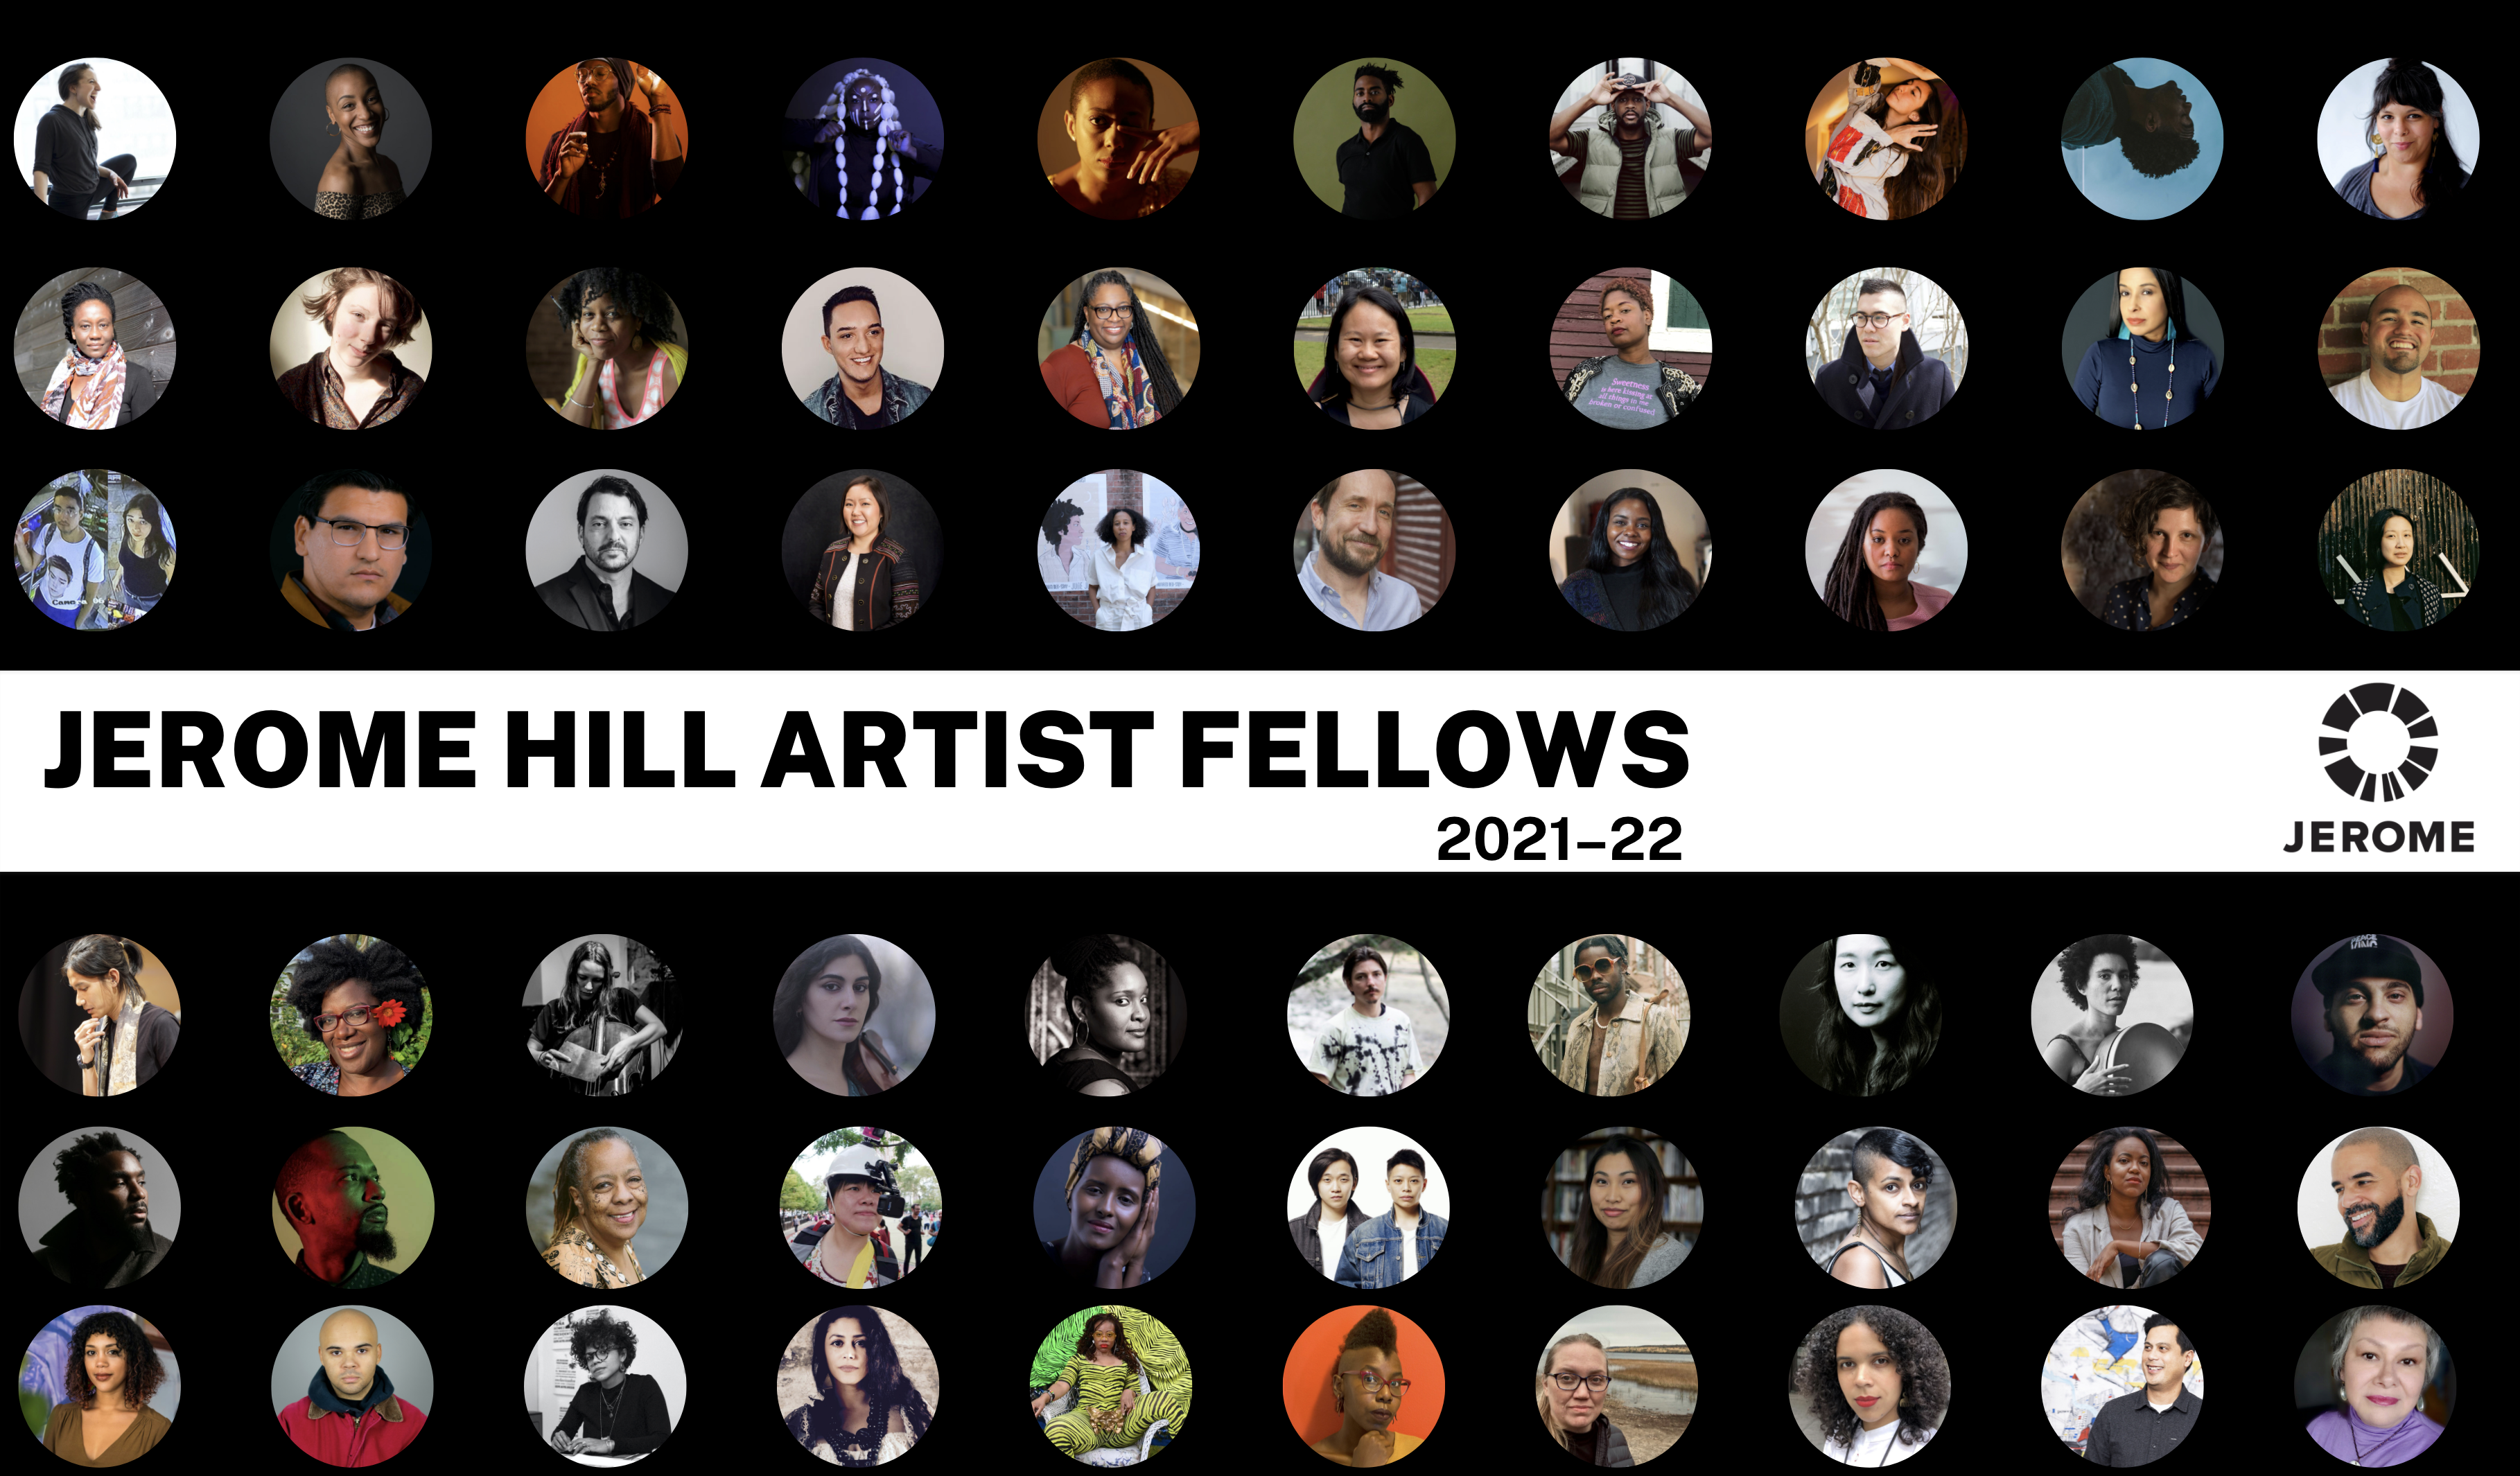 Banner image featuring pictures of all Jerome Hill Artist Fellows for 2021-22